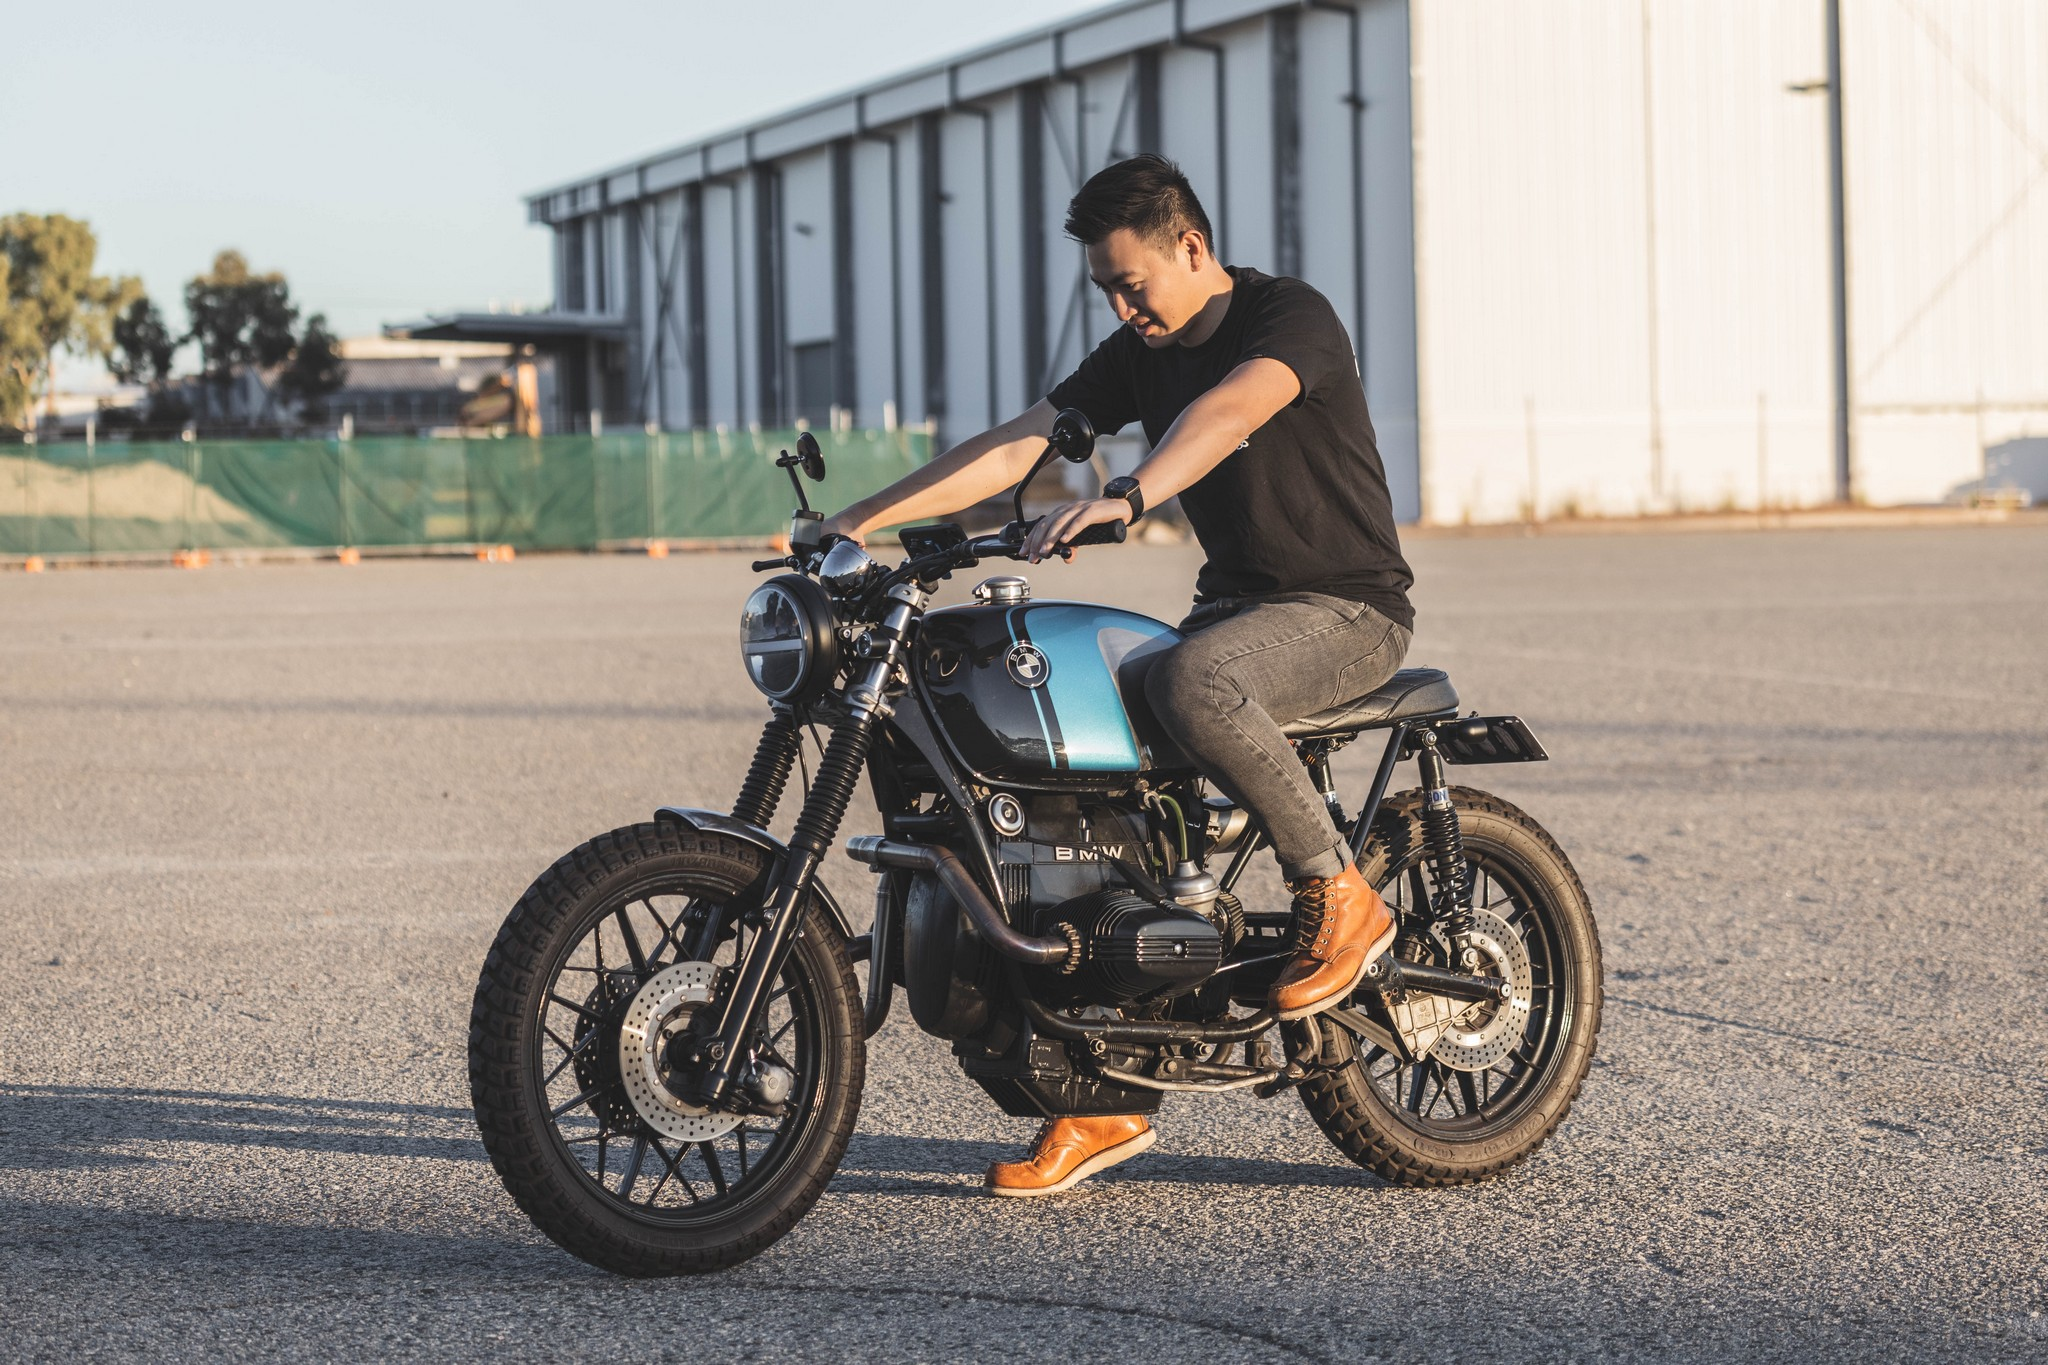 BMW Street Scrambler with man and shed